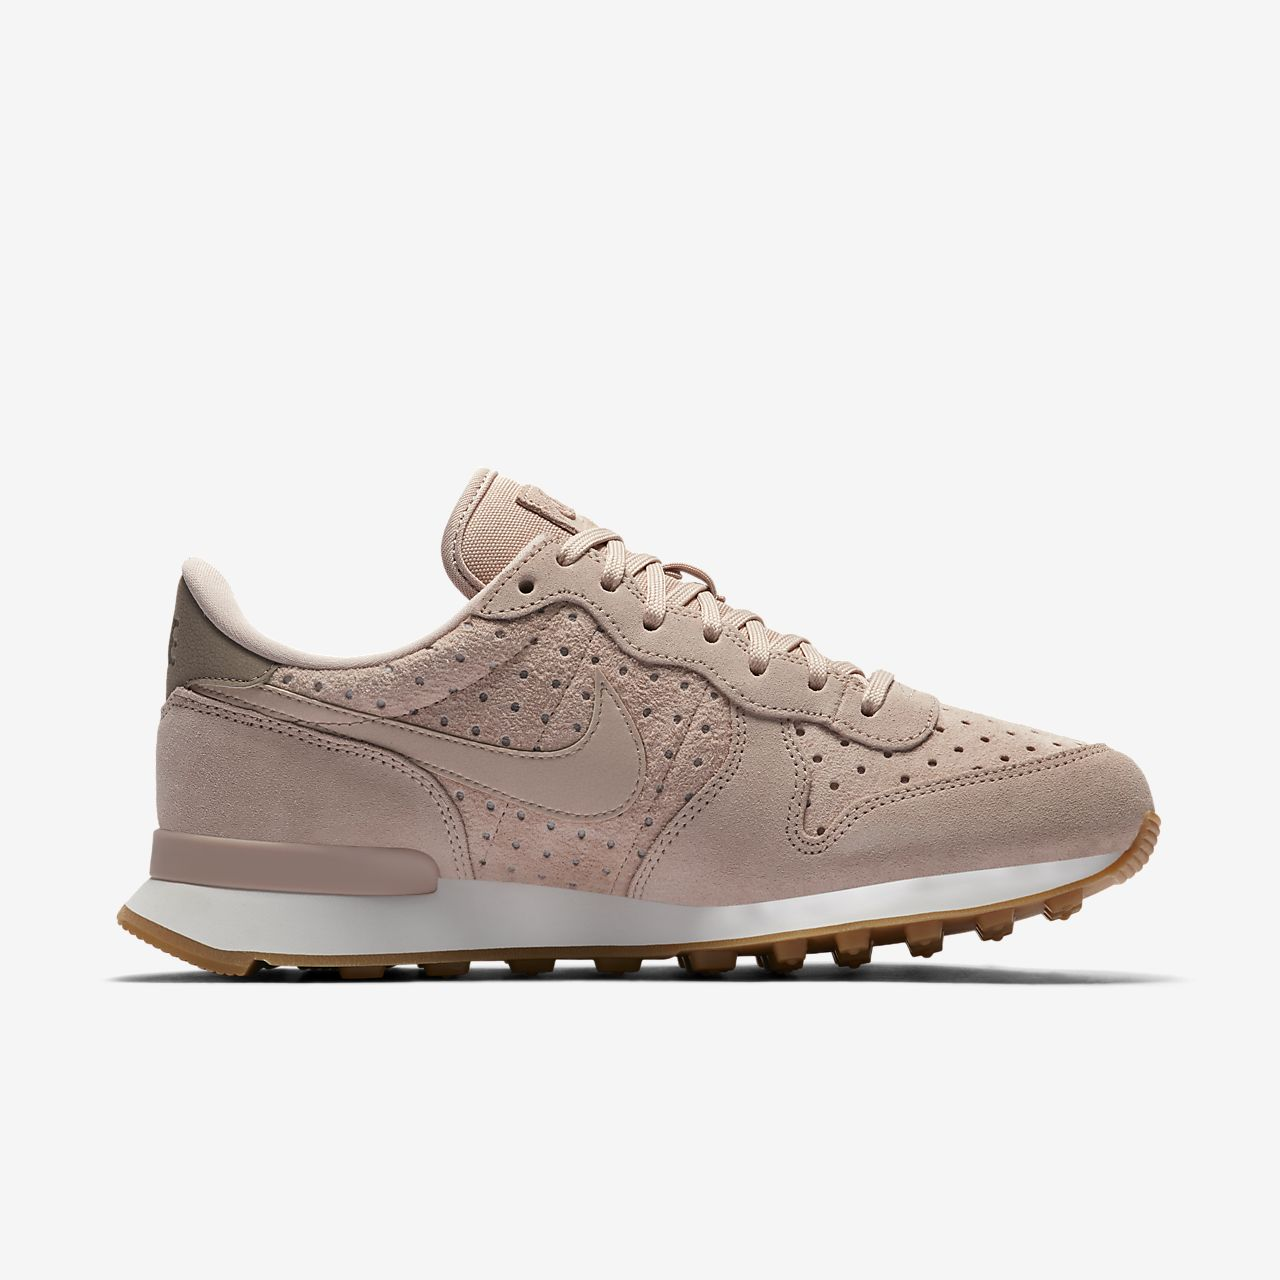 Nike Premium internationalist sneakers HDaRkEC